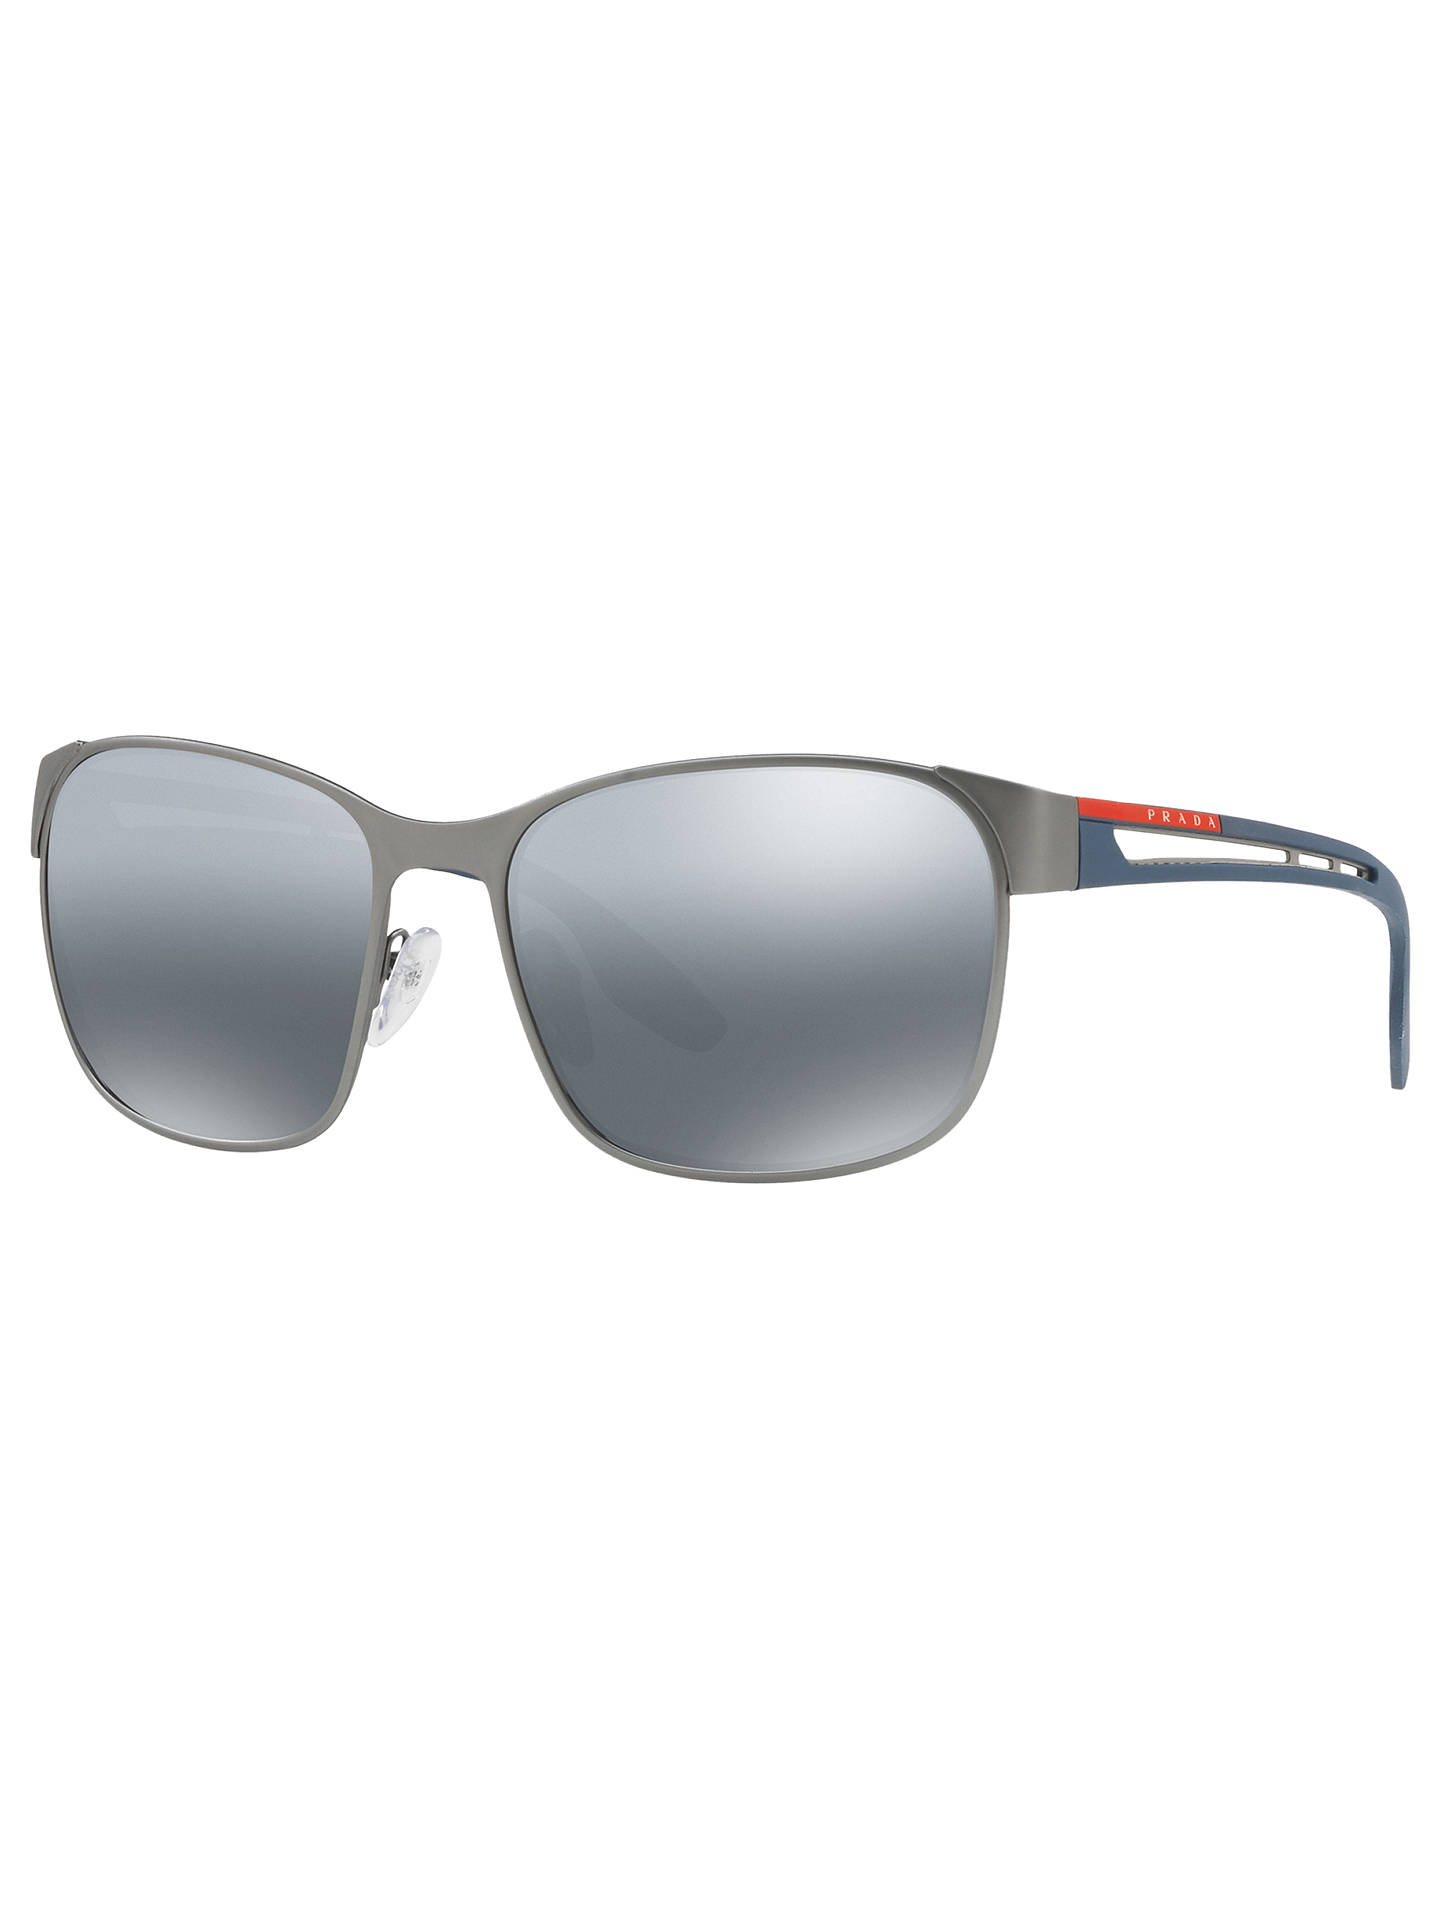 a4165570a7d Prada Linea Rossa PS 52TS Men s Polarised Square Sunglasses ...